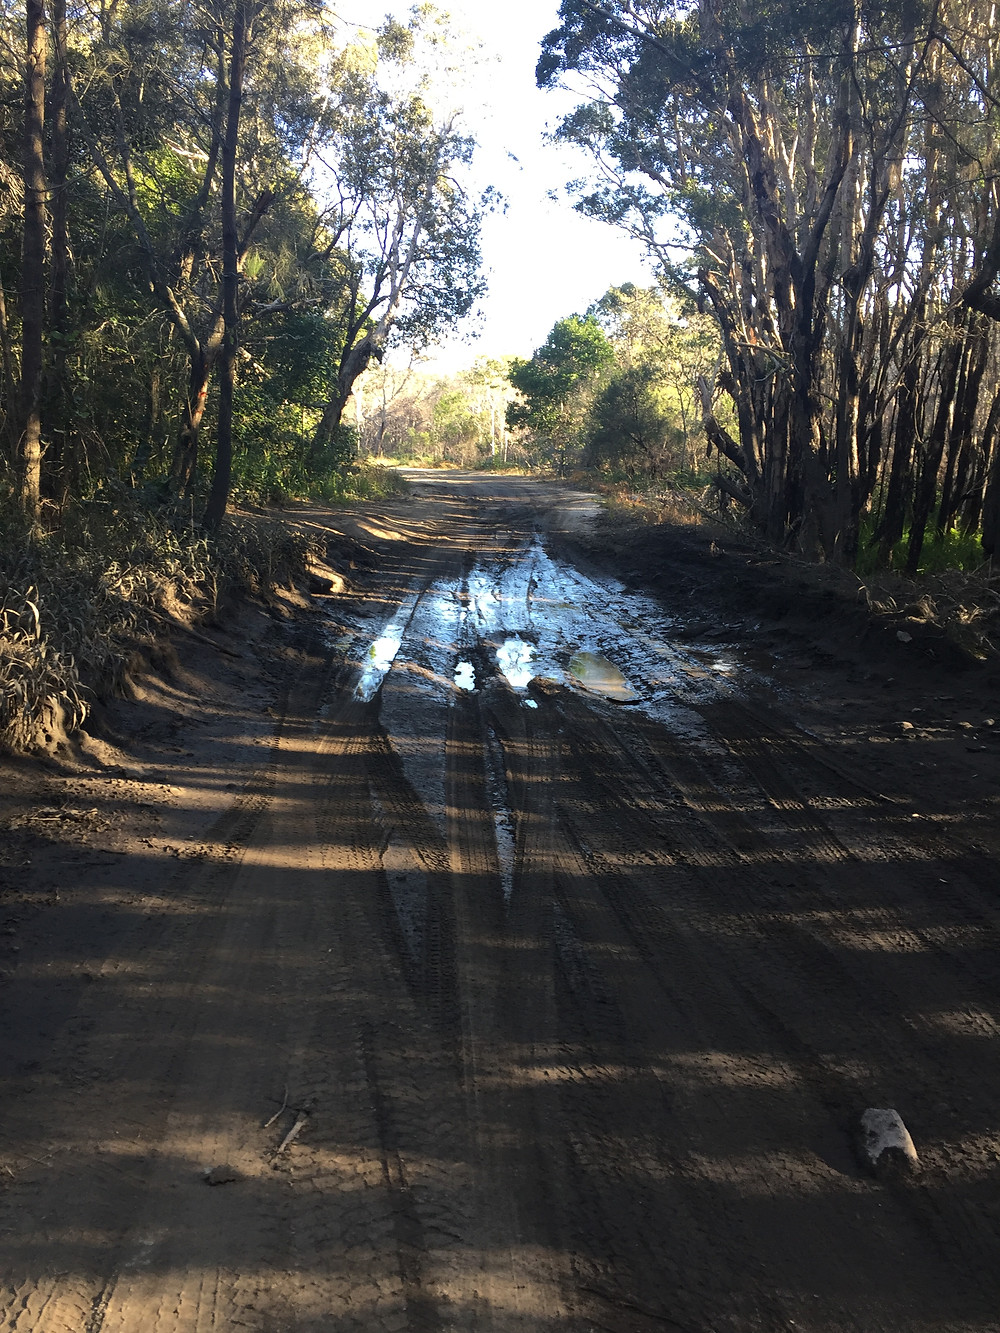 NP unmaintained service road towards Port Macquarie